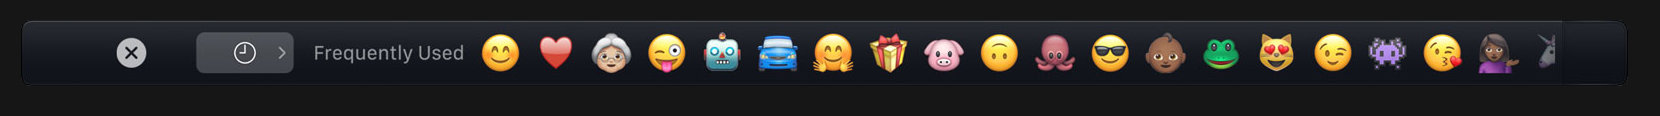 Touch Bar Emojis